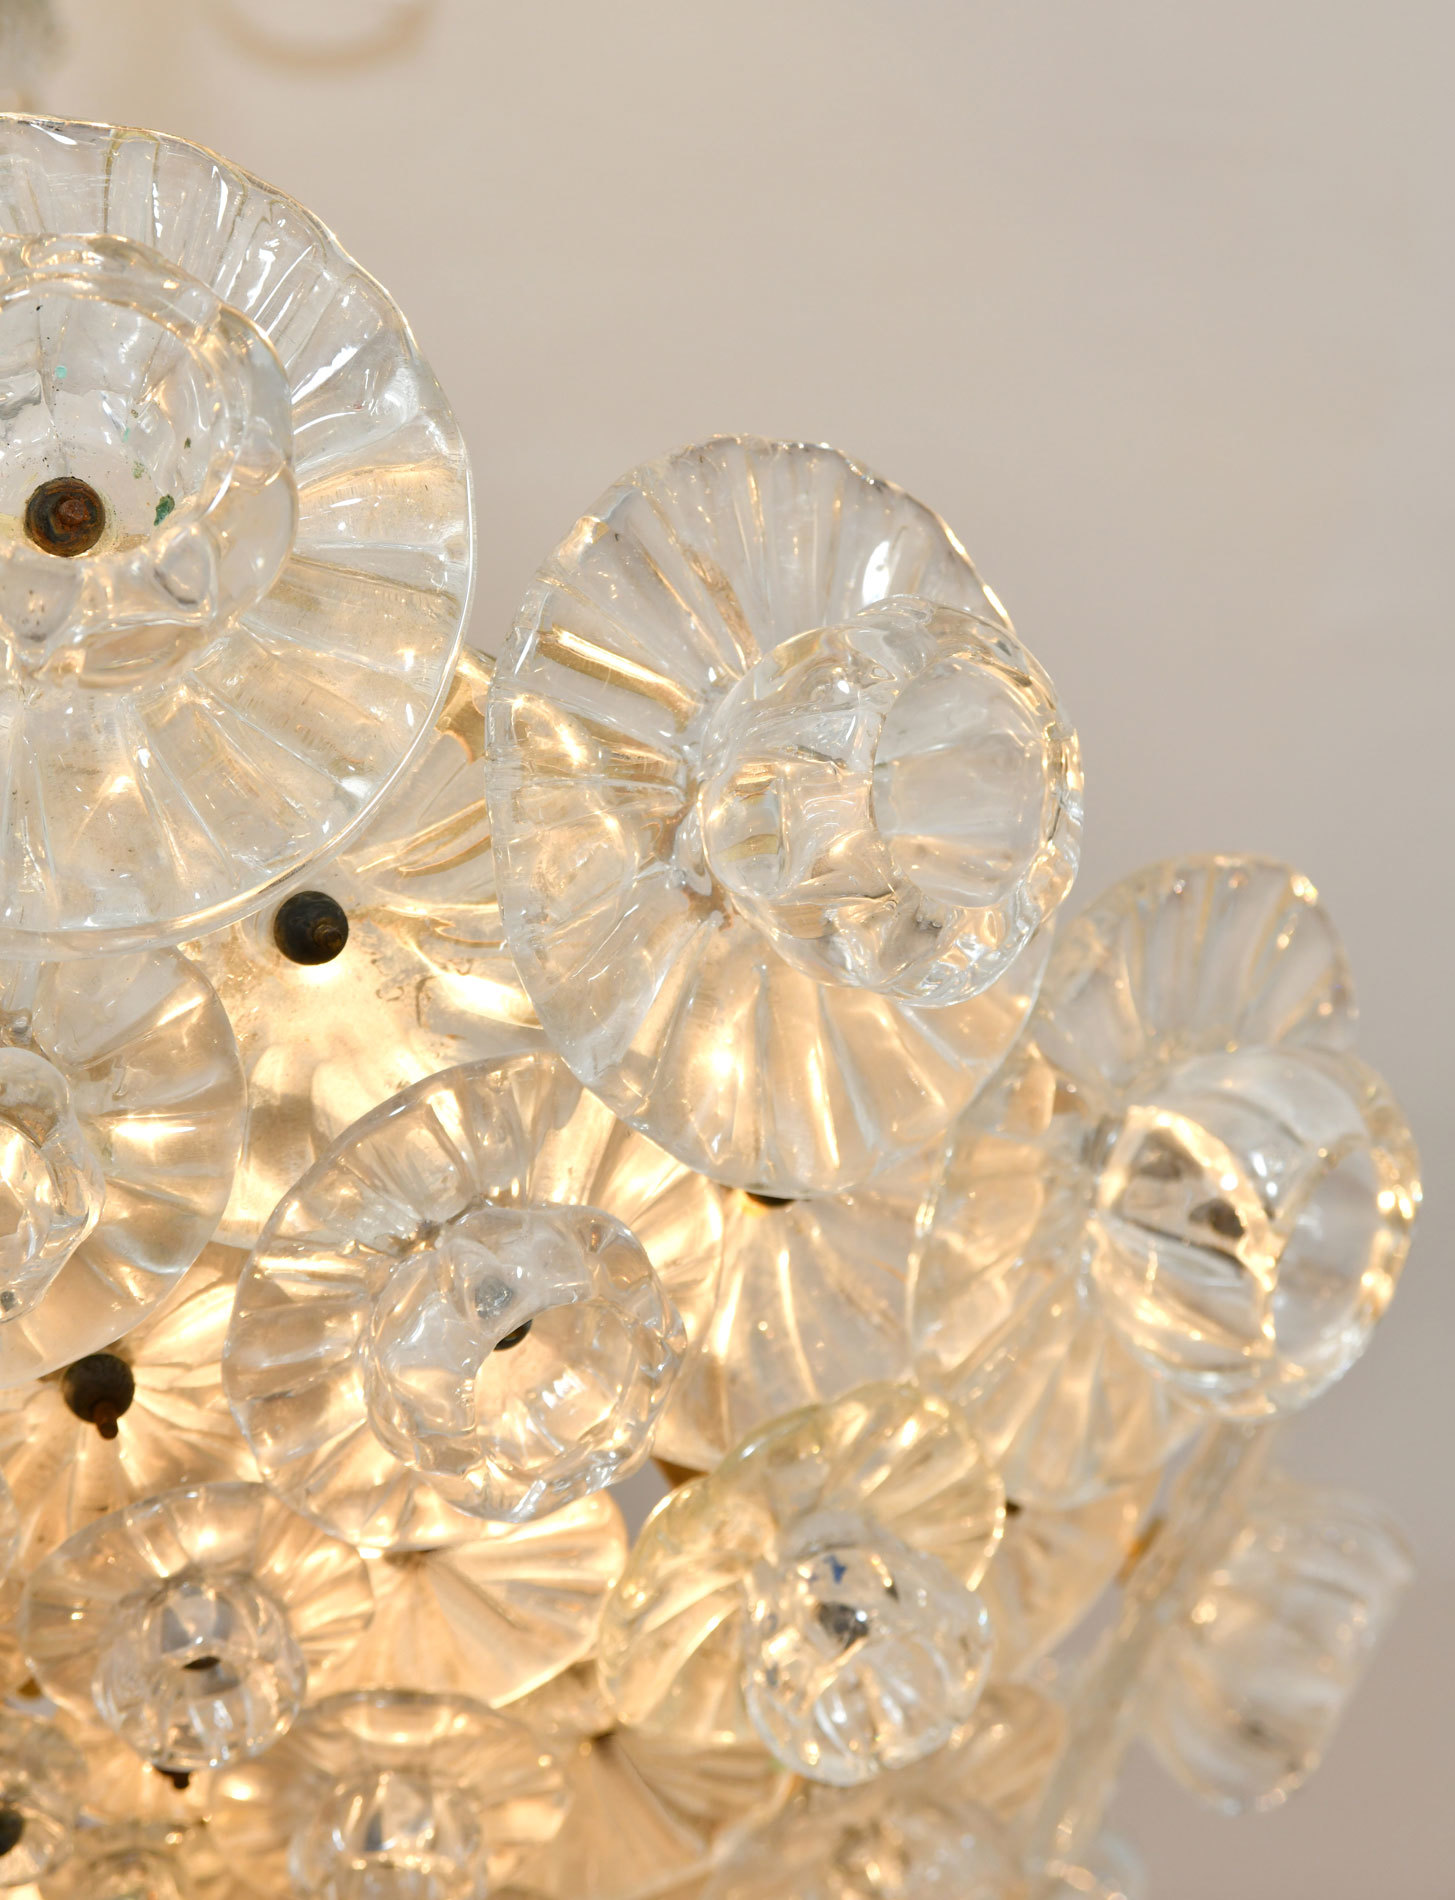 The image for Murano Glass Chandelier By Barovier 05